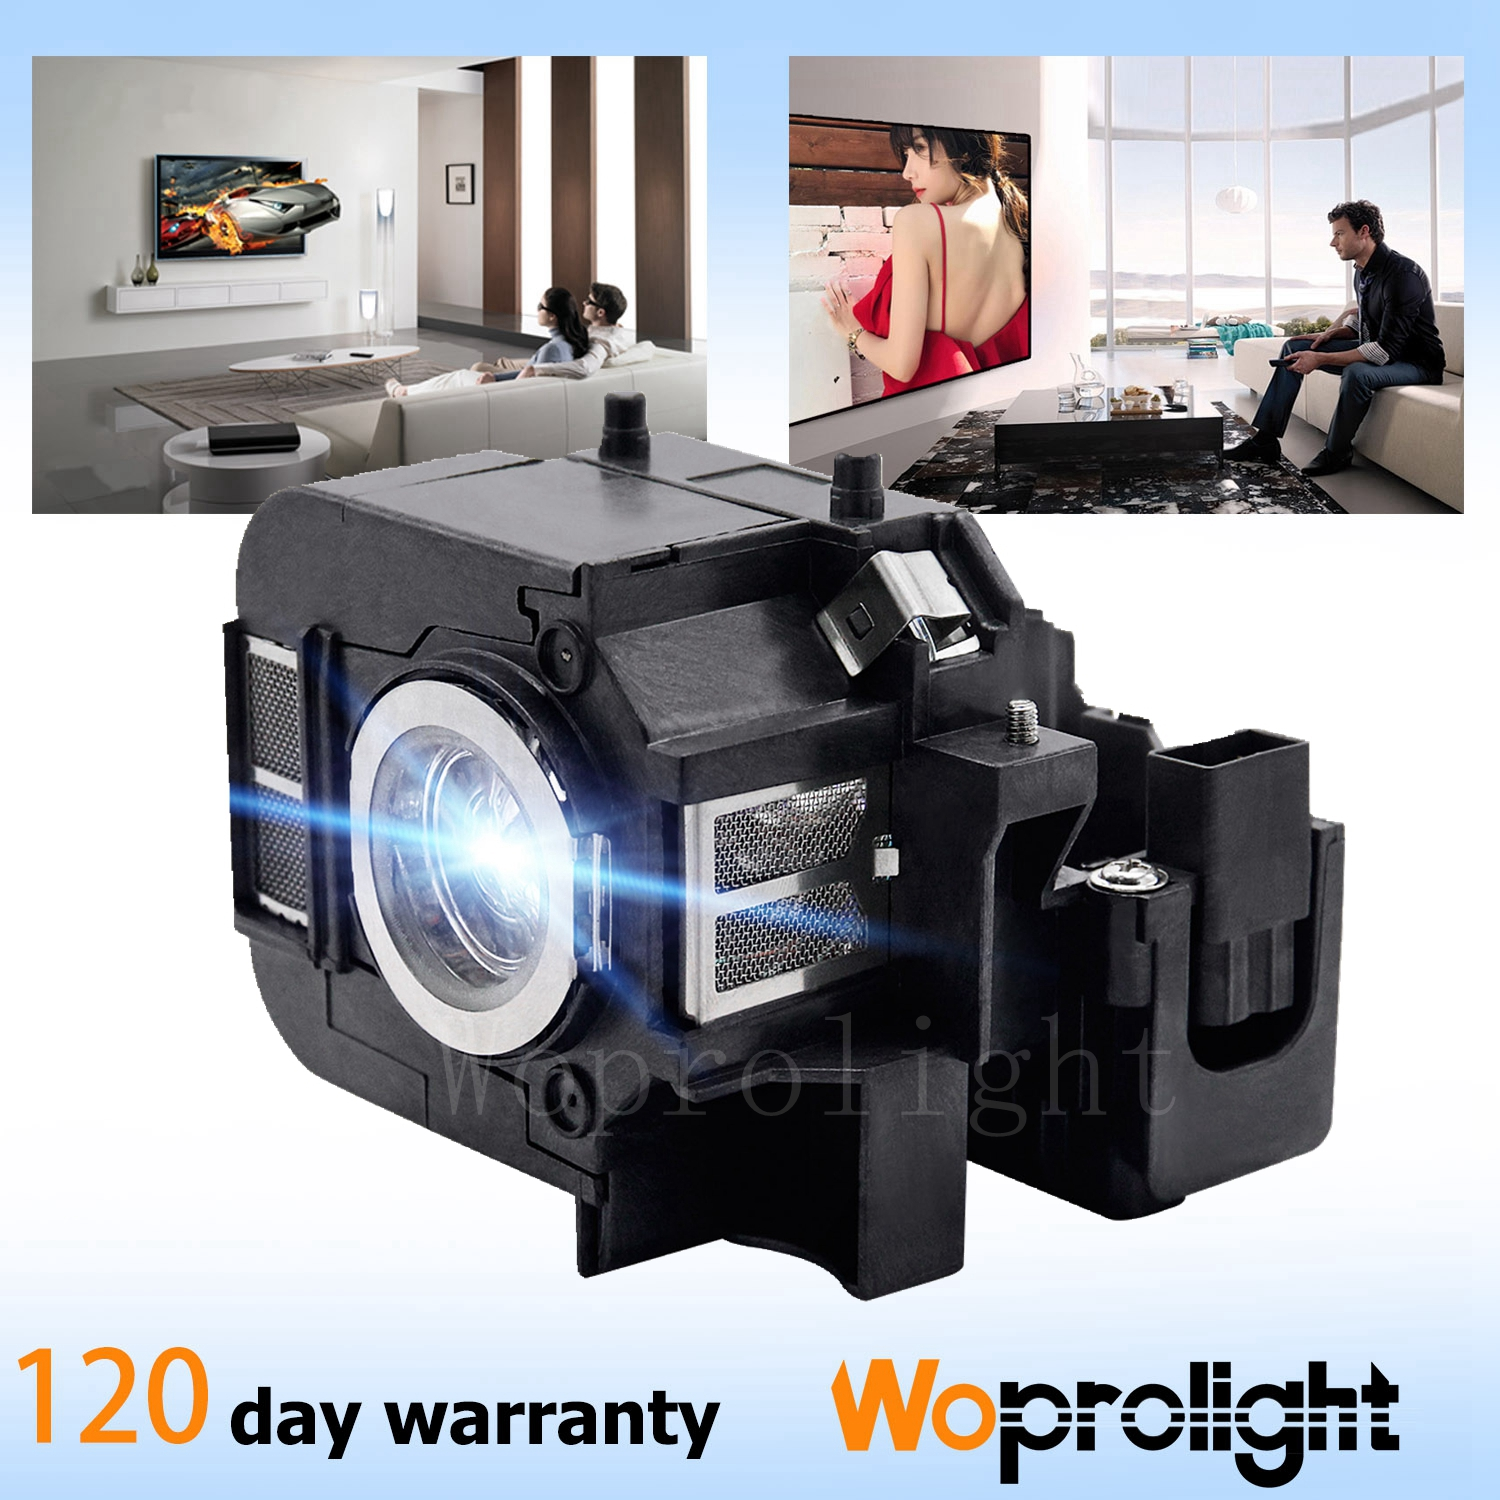 H ,EB-825 Projector Lamp for Epson ELPLP50,V13H010L50,EB-84,EB-85,EB-825,EB-84 ,PowerLite 825,PowerLite 825+,PowerLite 826W,PowerLite 826W+ H